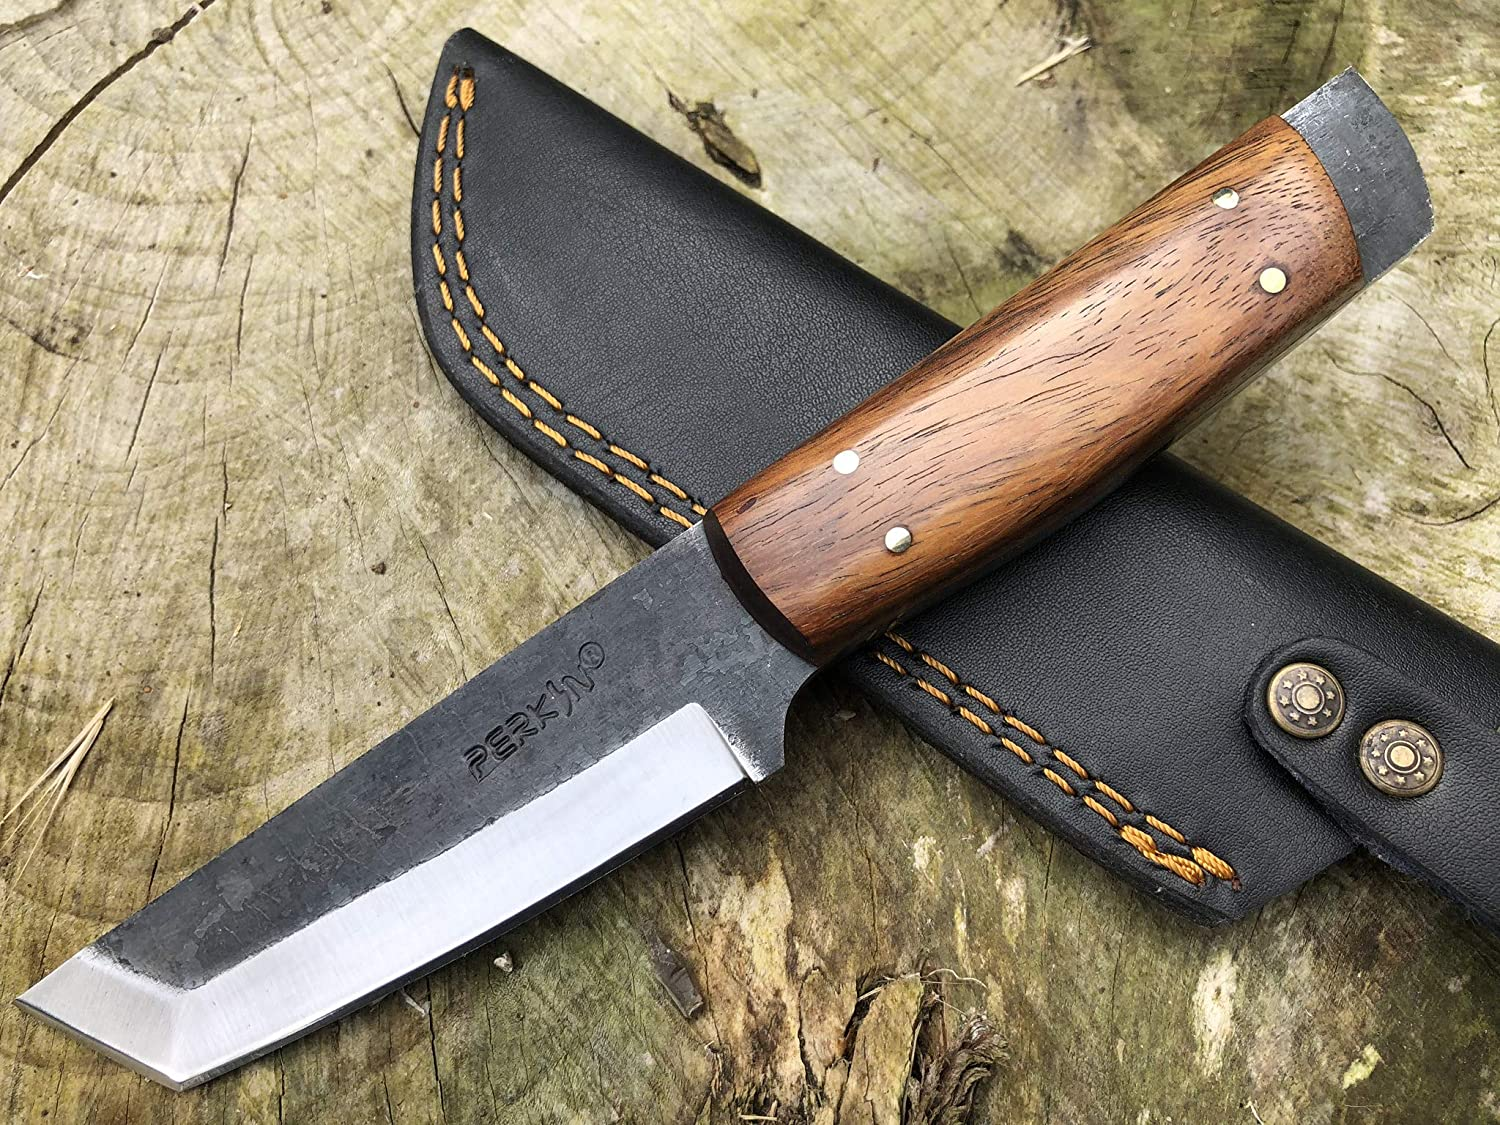 Perkin PK800 Hunting Knife with Sheath Fixed Blade Knife